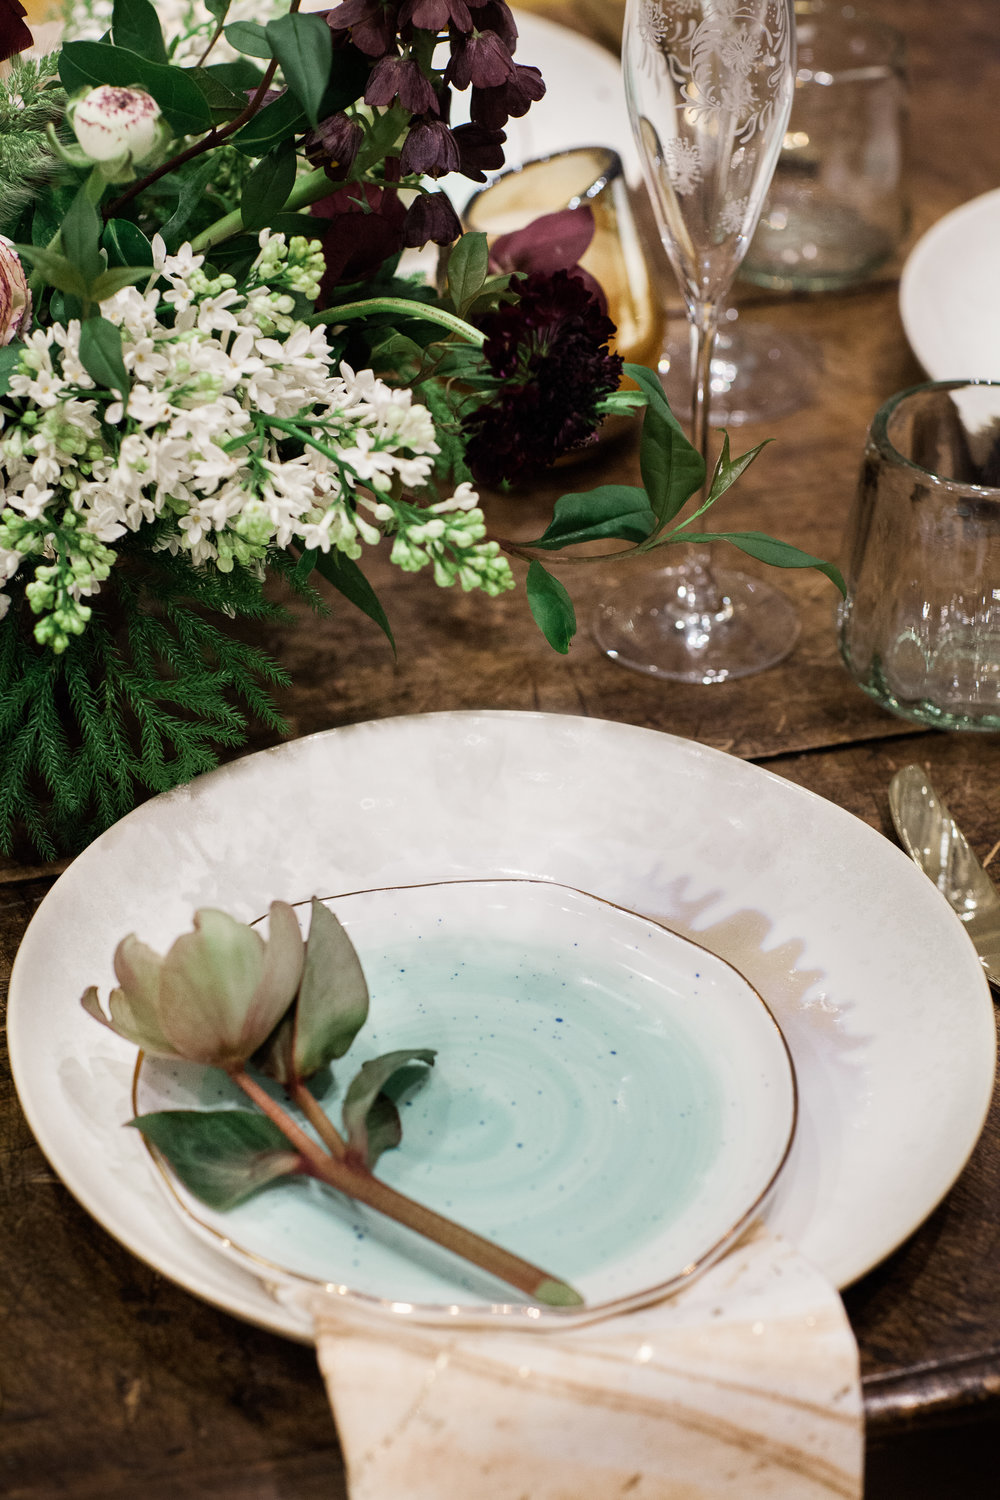 033017_Spring Dinner Party_Anthropologie PA_Buena Lane Photography_012.jpg